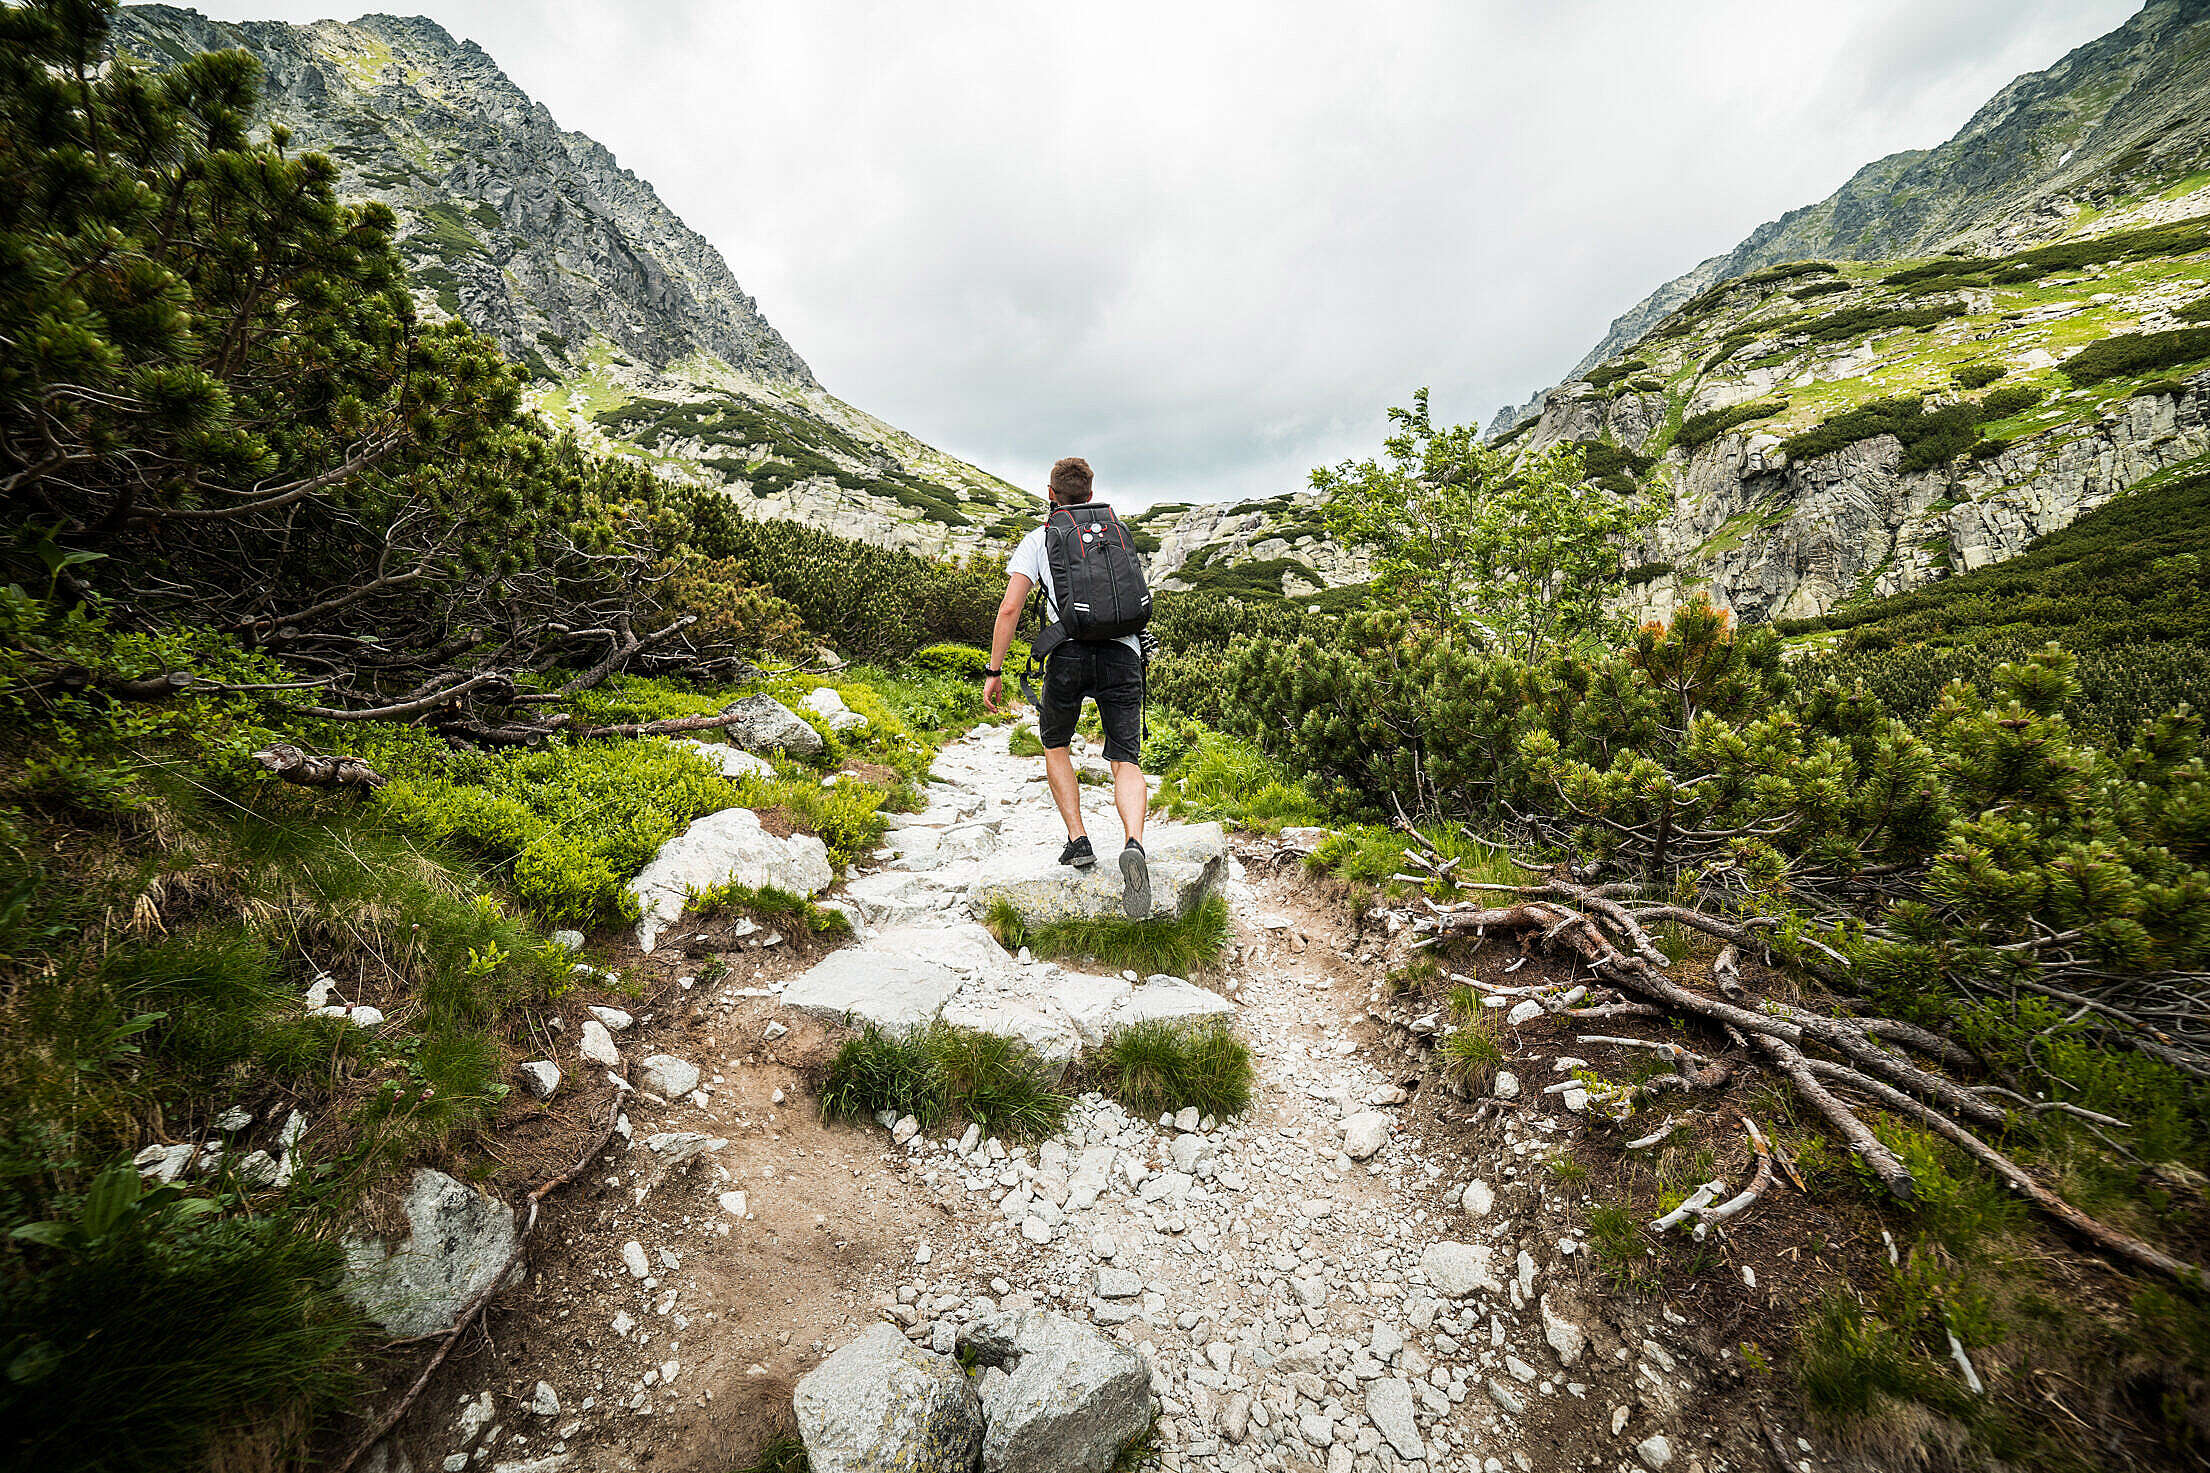 Man Hiking Alone in Mountains Free Stock Photo